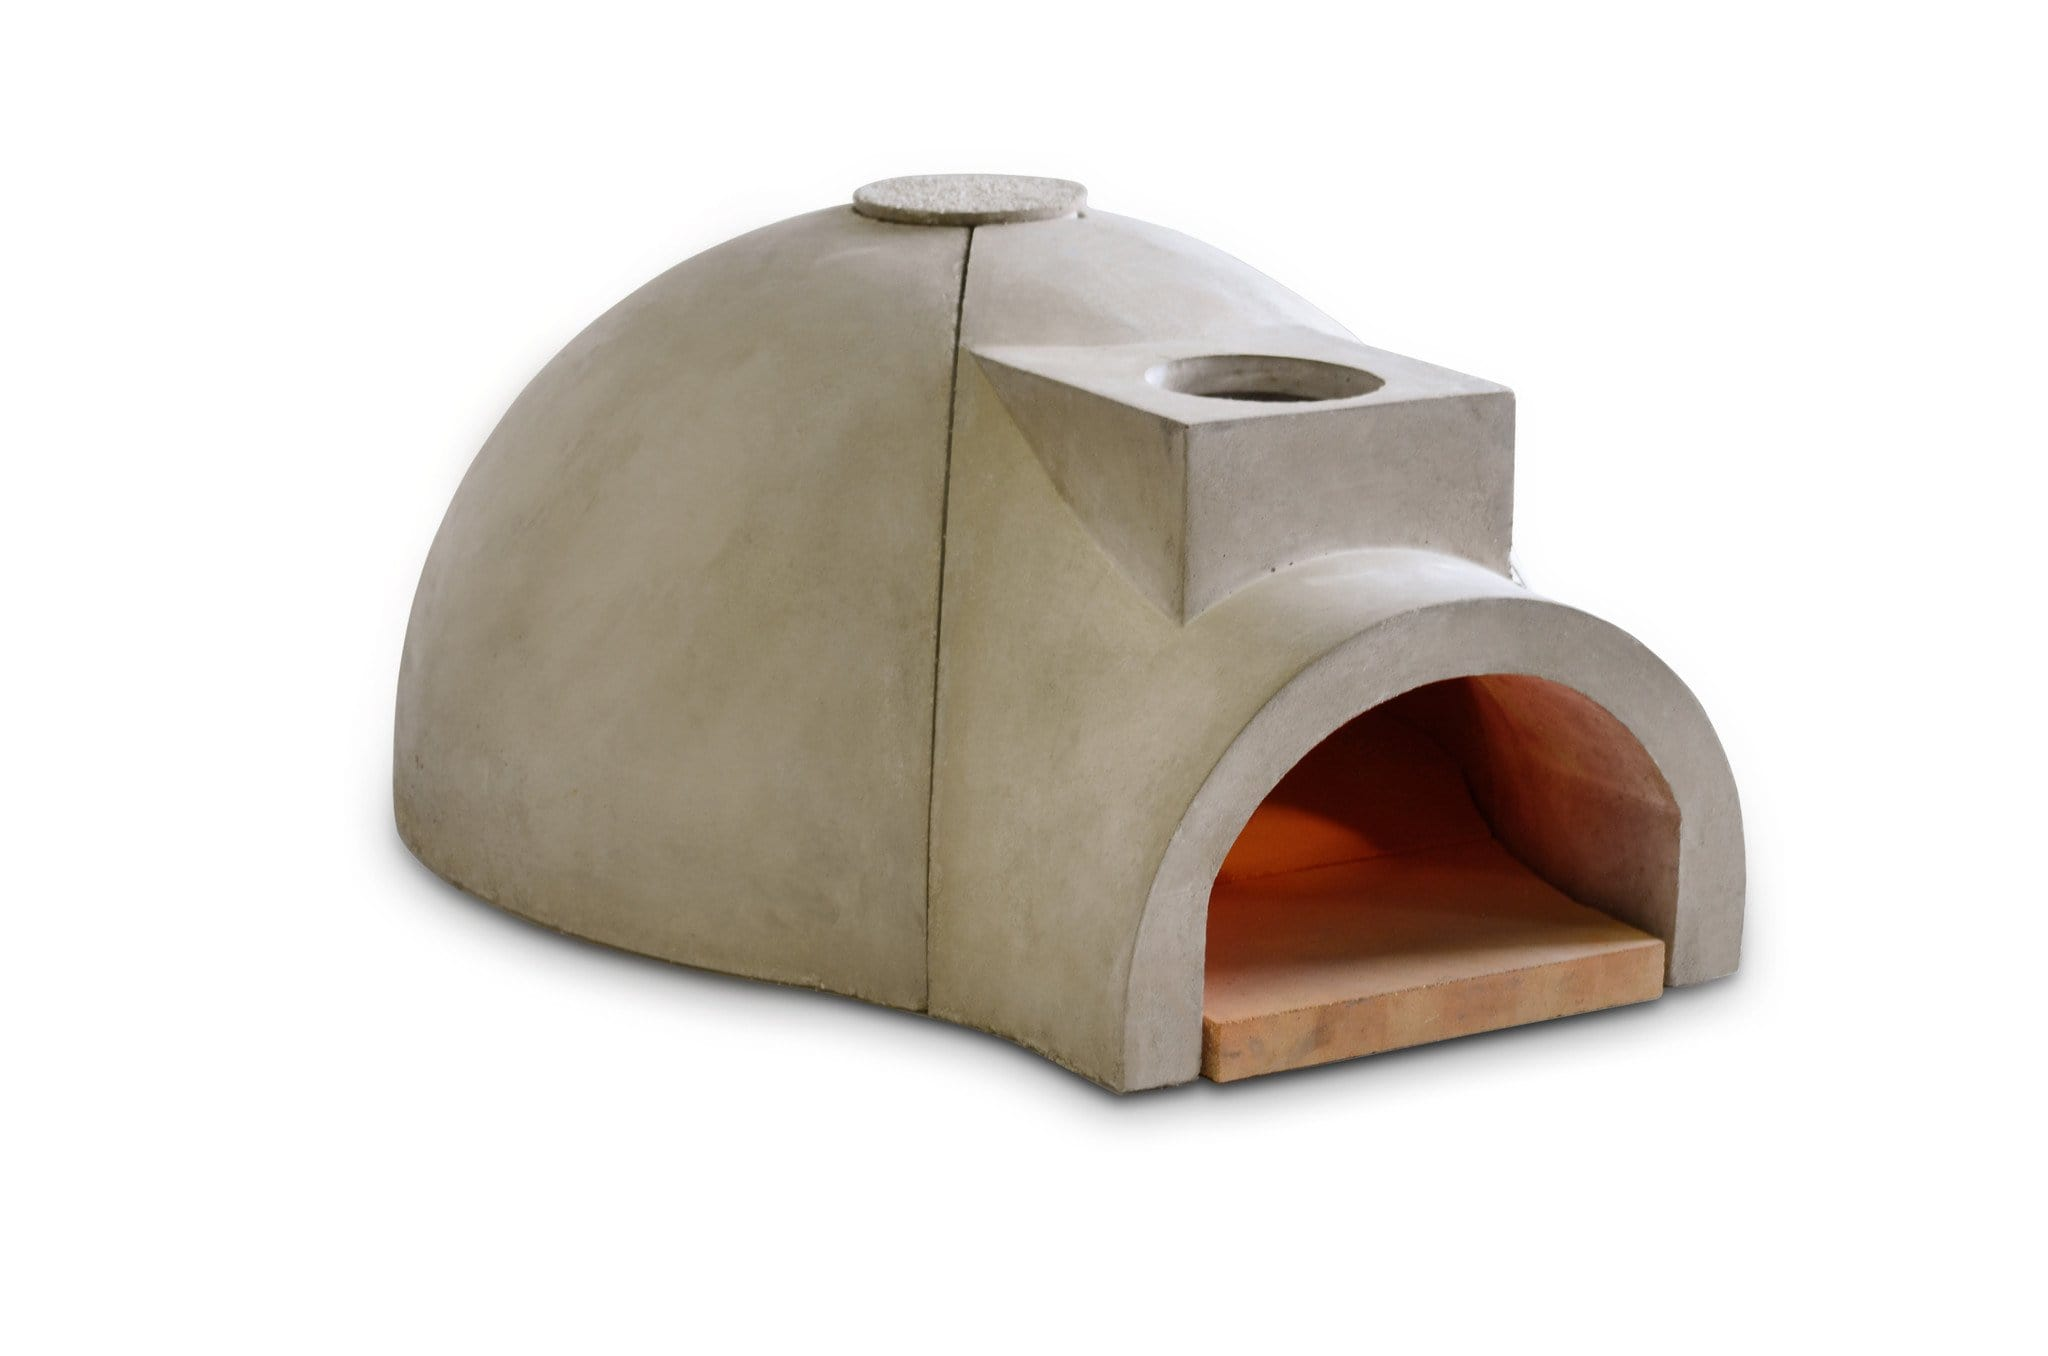 Wood Fired Pizza Oven Kit Garzoni 350 Californo